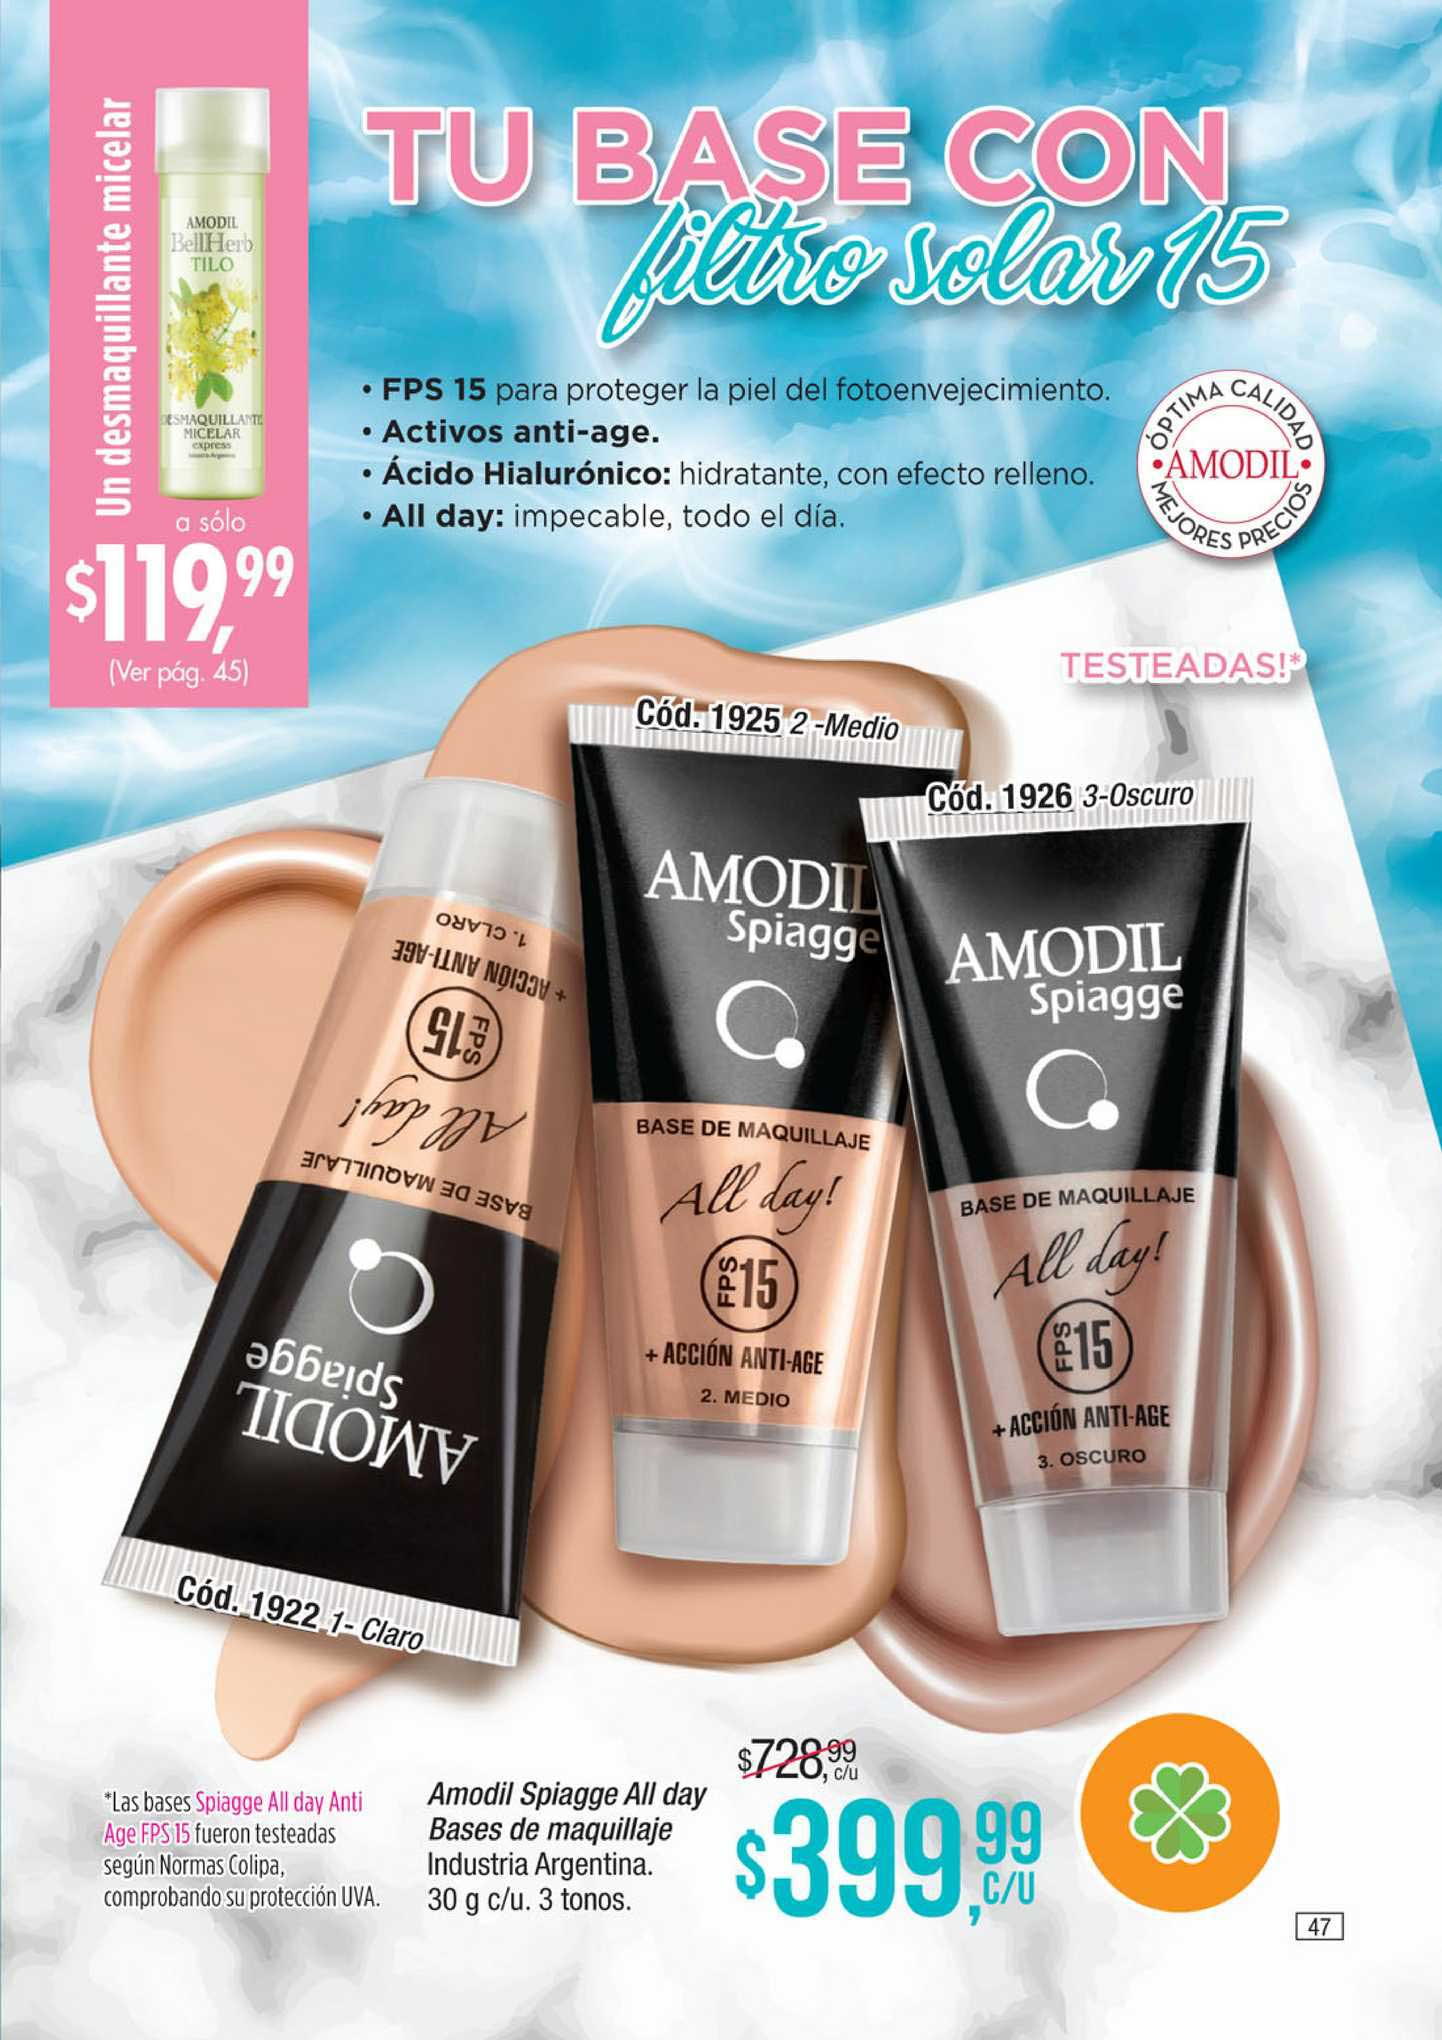 Amodil Amodil Spiagge All Day Bases De Maquillaje Industria Argentina